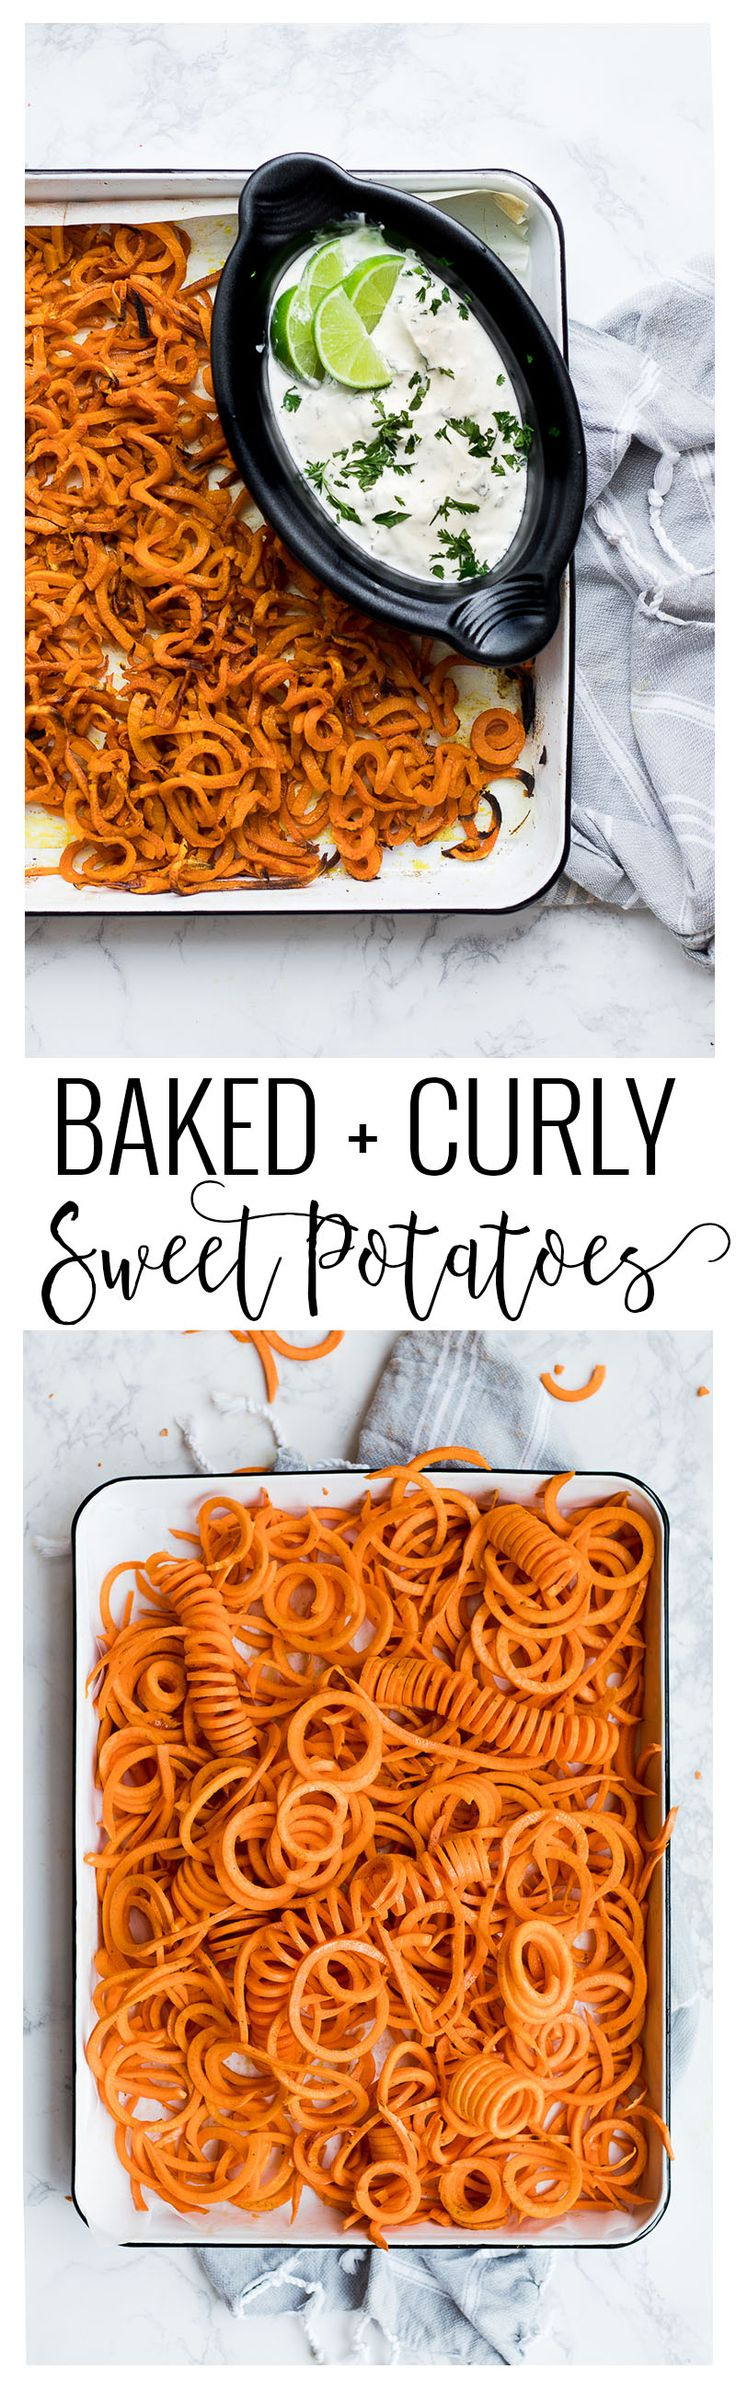 Baked Curly Sweet Potatoes + Cilantro Lime Dip